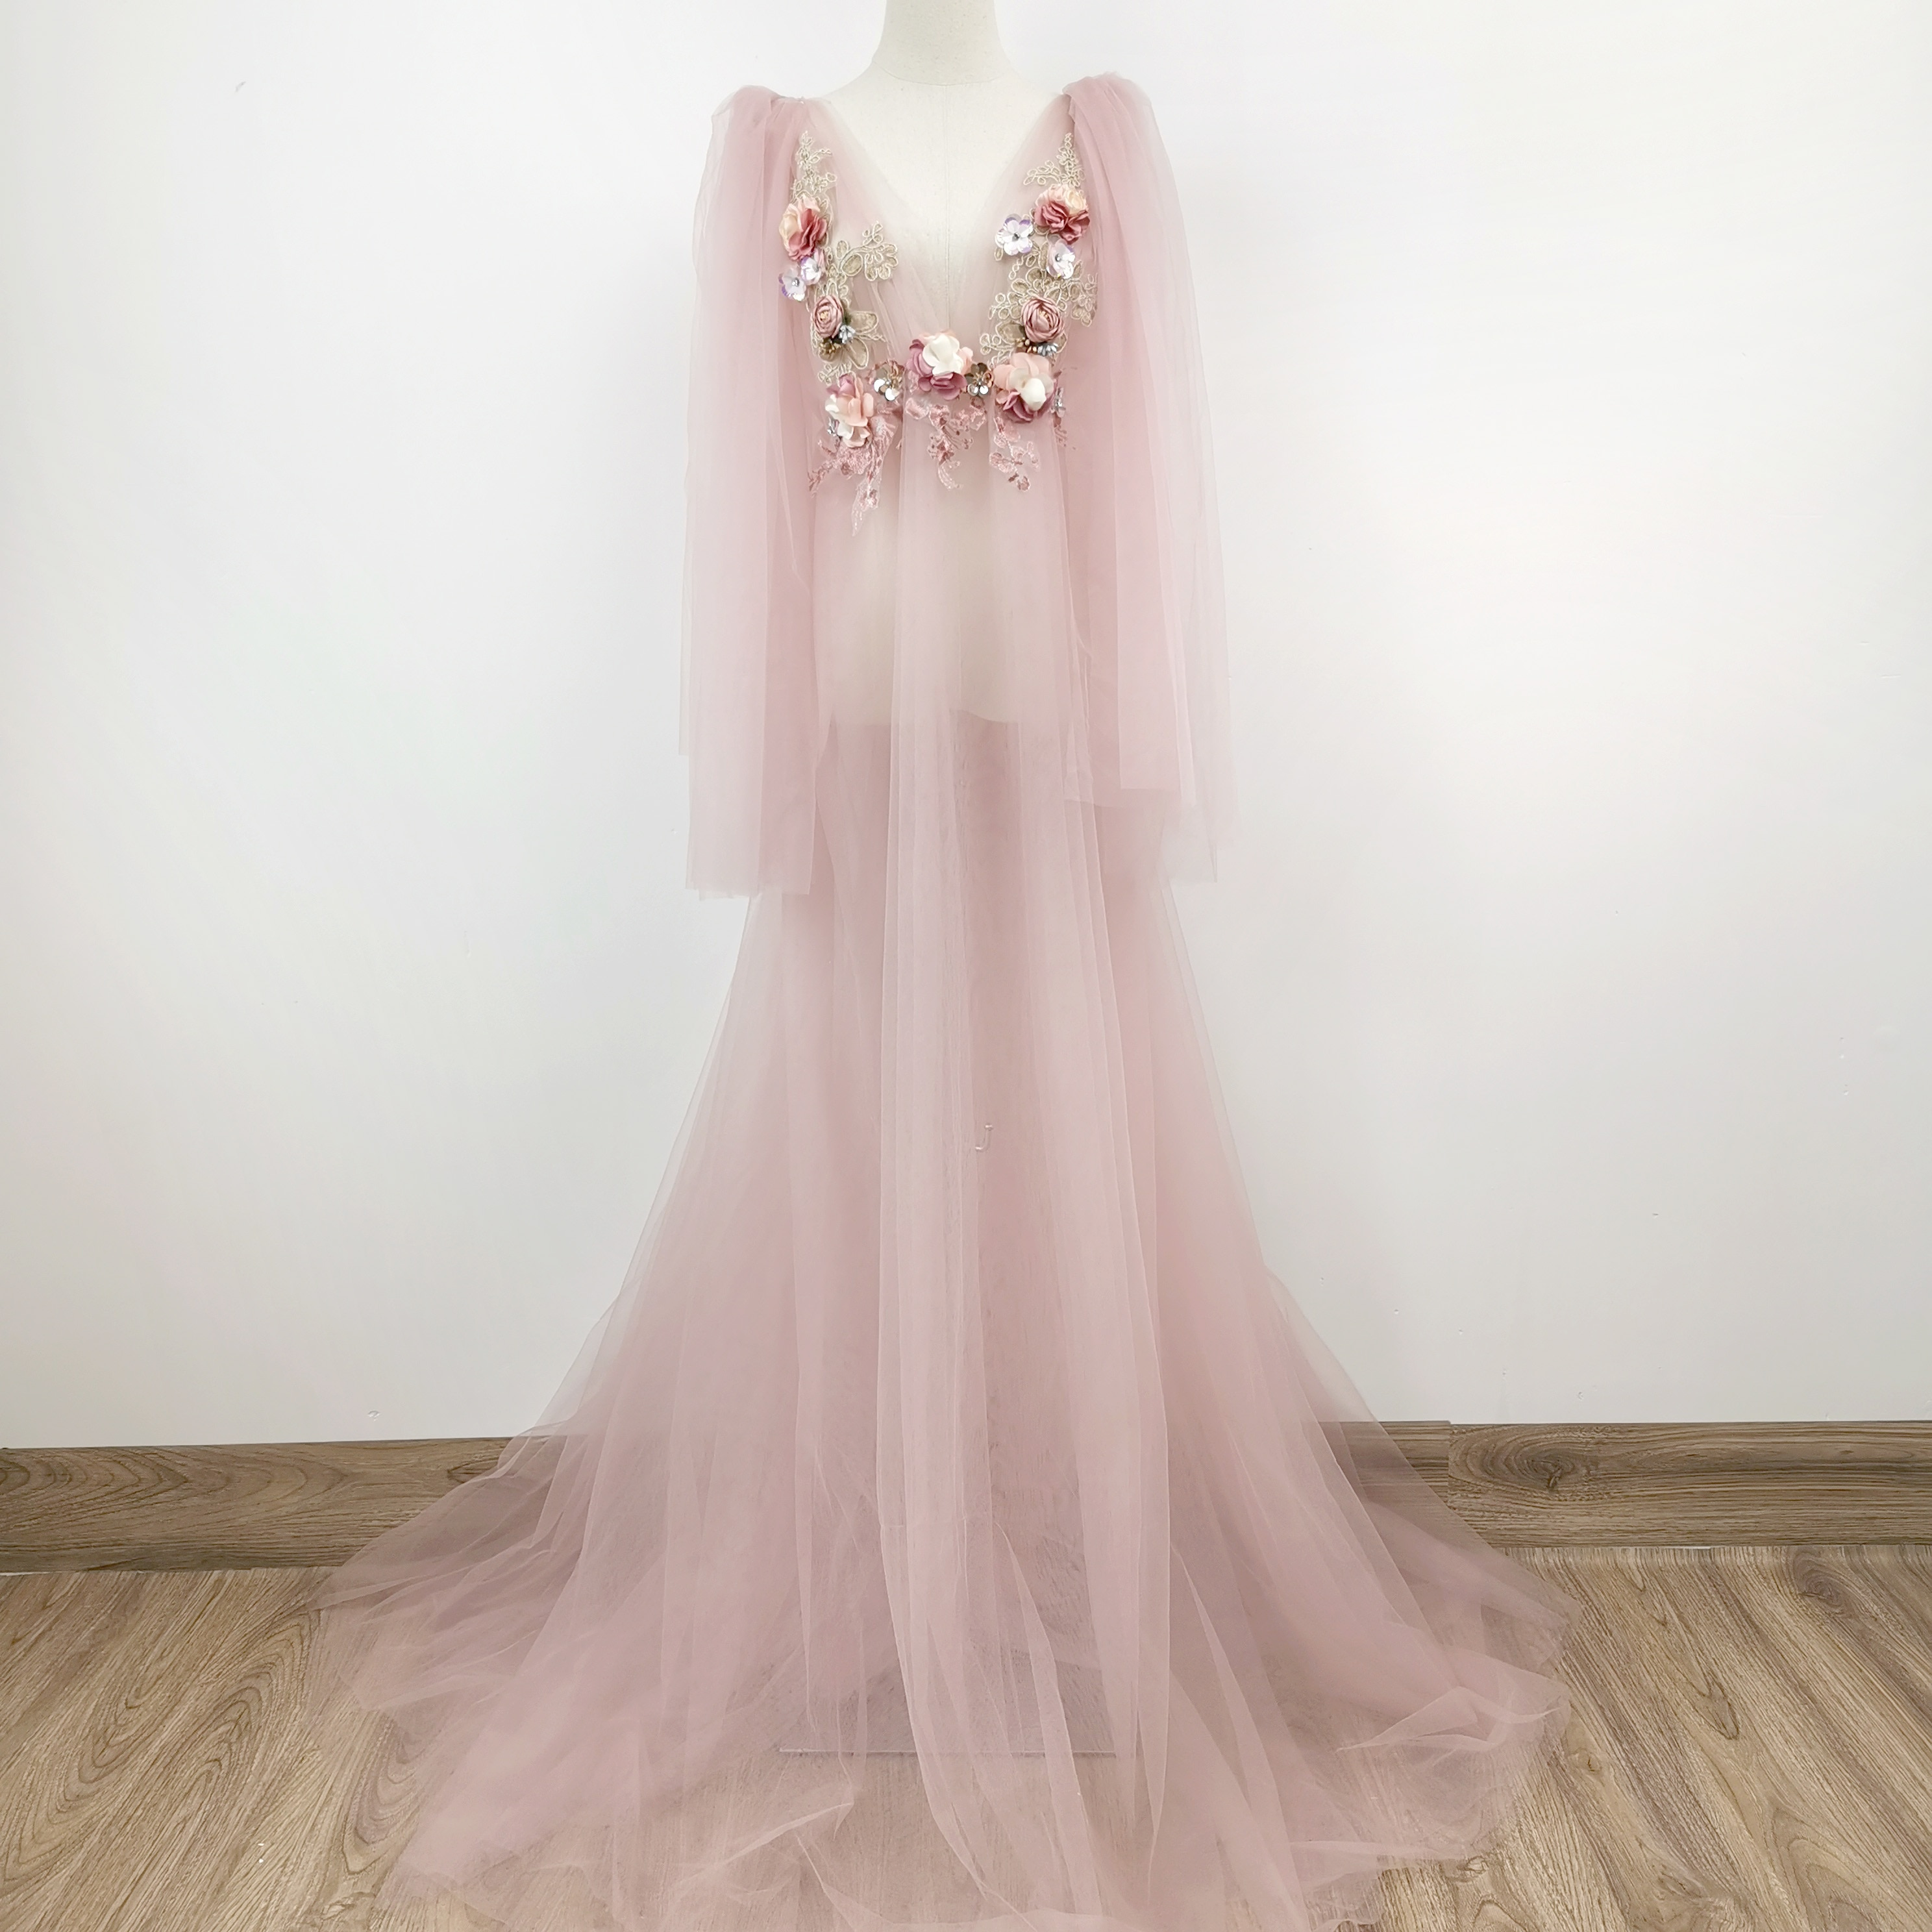 Photo Shoot Soft Maxi Embroidery Maternity Dress Evening Prom Dress Tulle Robe Party Gown for Pregnancy Studio Photography Prop enlarge